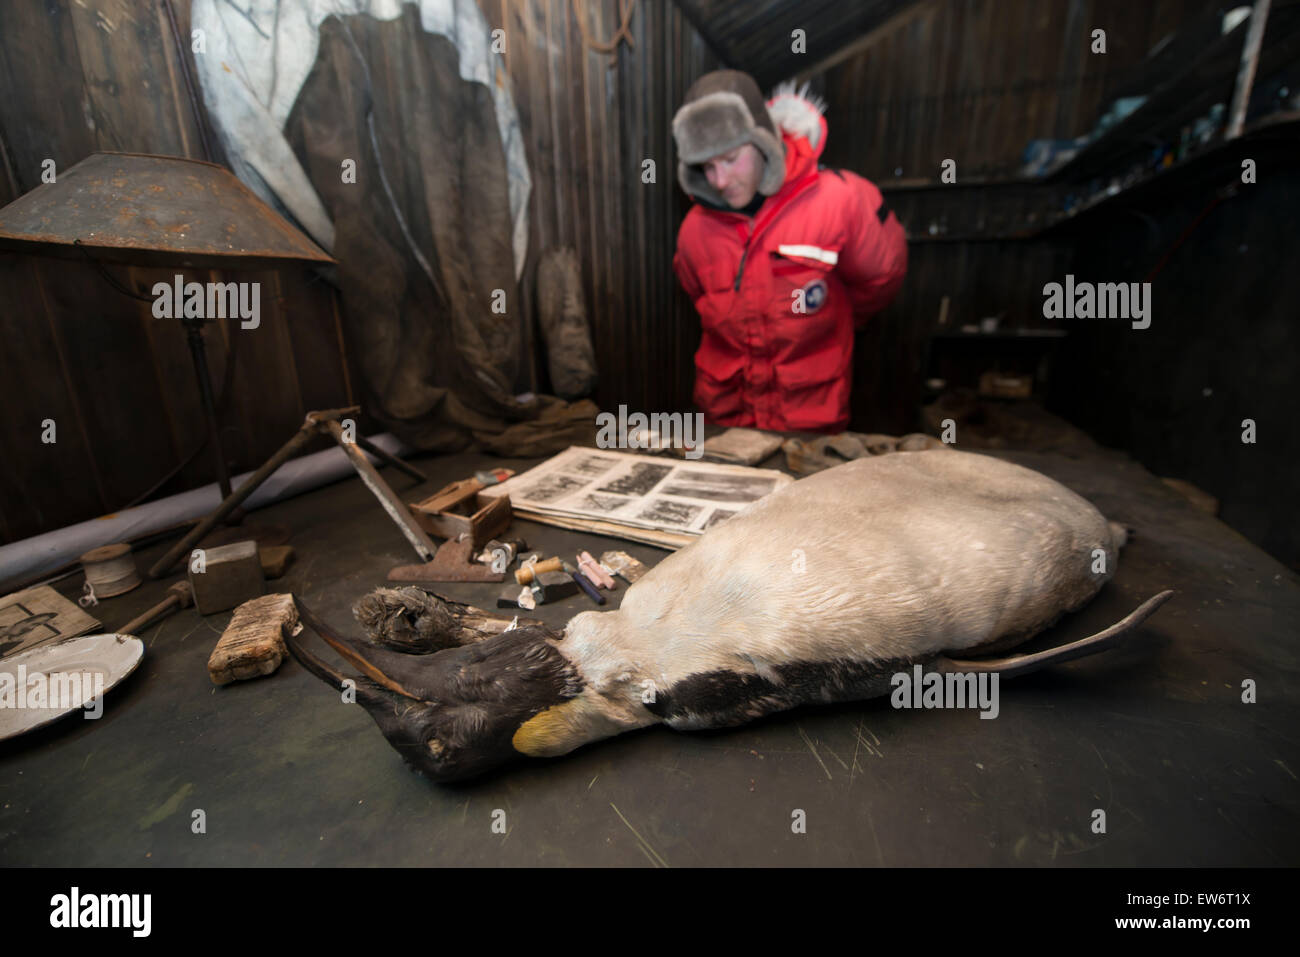 Man examines the contents of the inside of Captain Scott's Terra Nova Hut, Cape Evans, Antarctica. - Stock Image